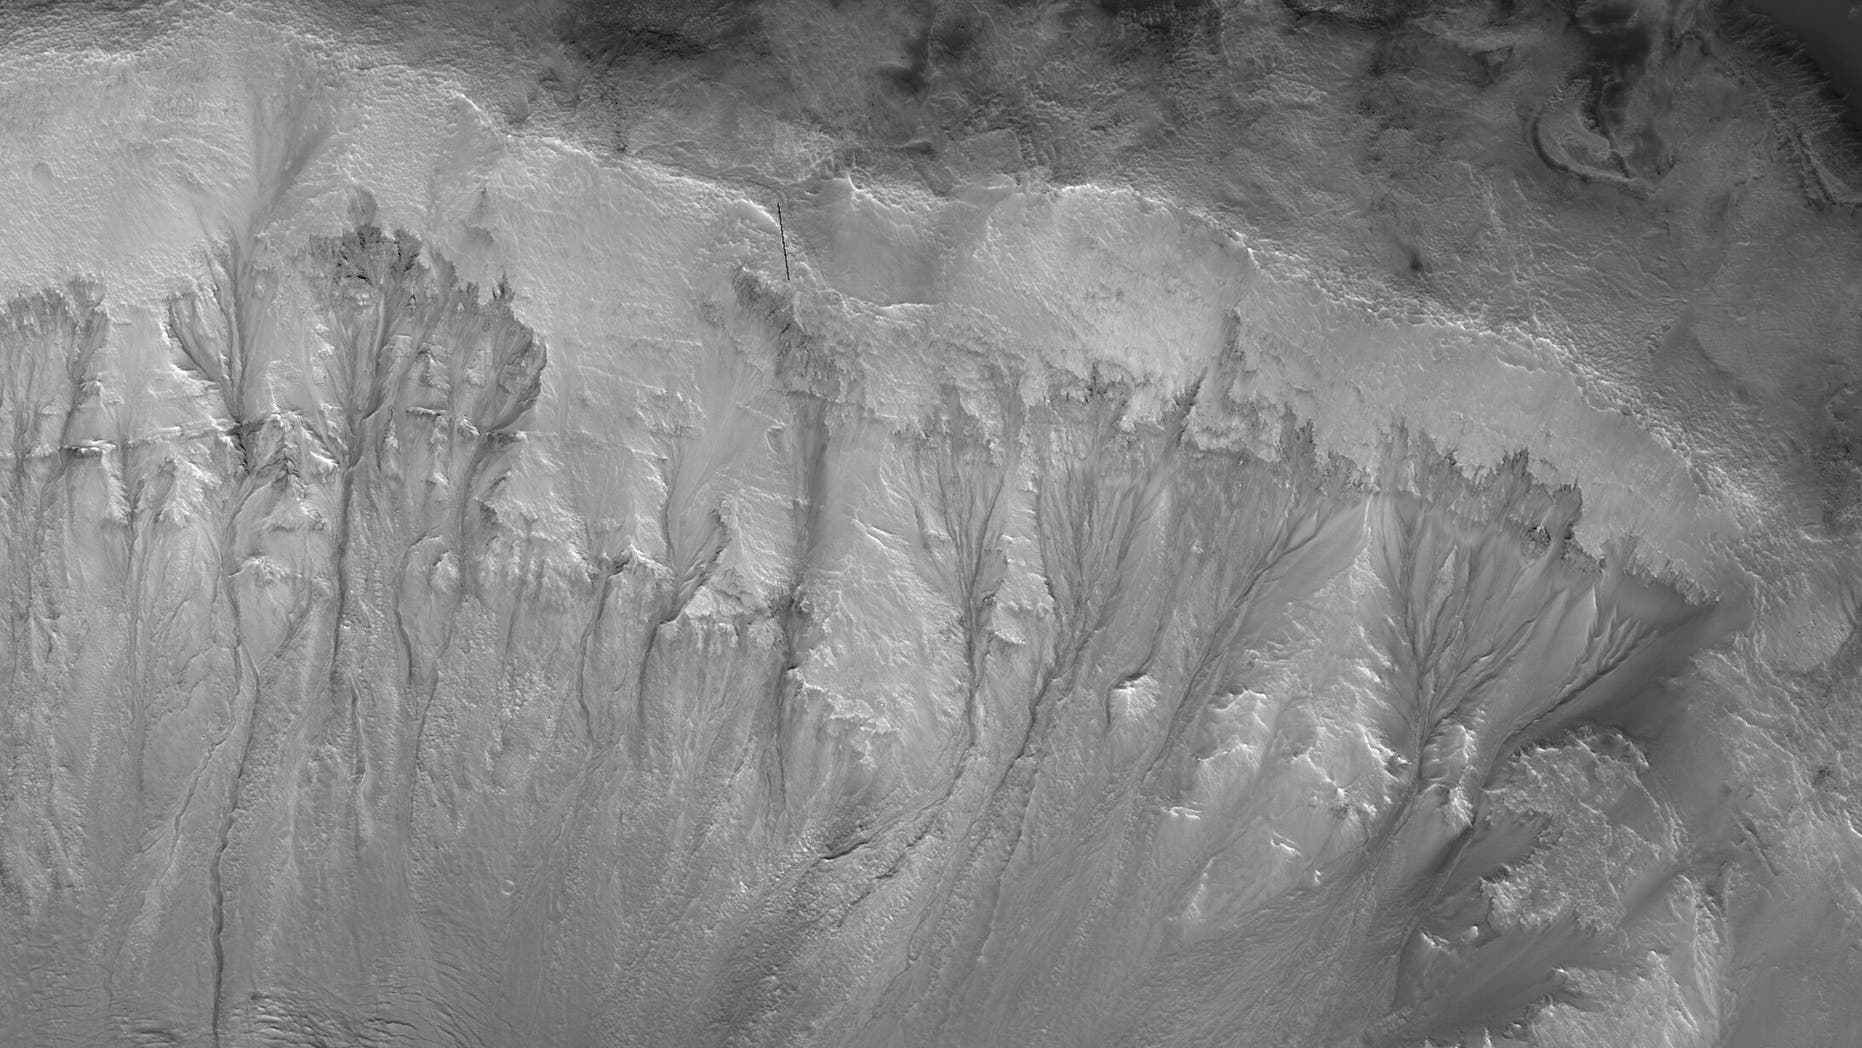 Repeating slope Linna on the walls of Palicir's foot on Mars. (Author: NASA / JPL / University of Arizona)